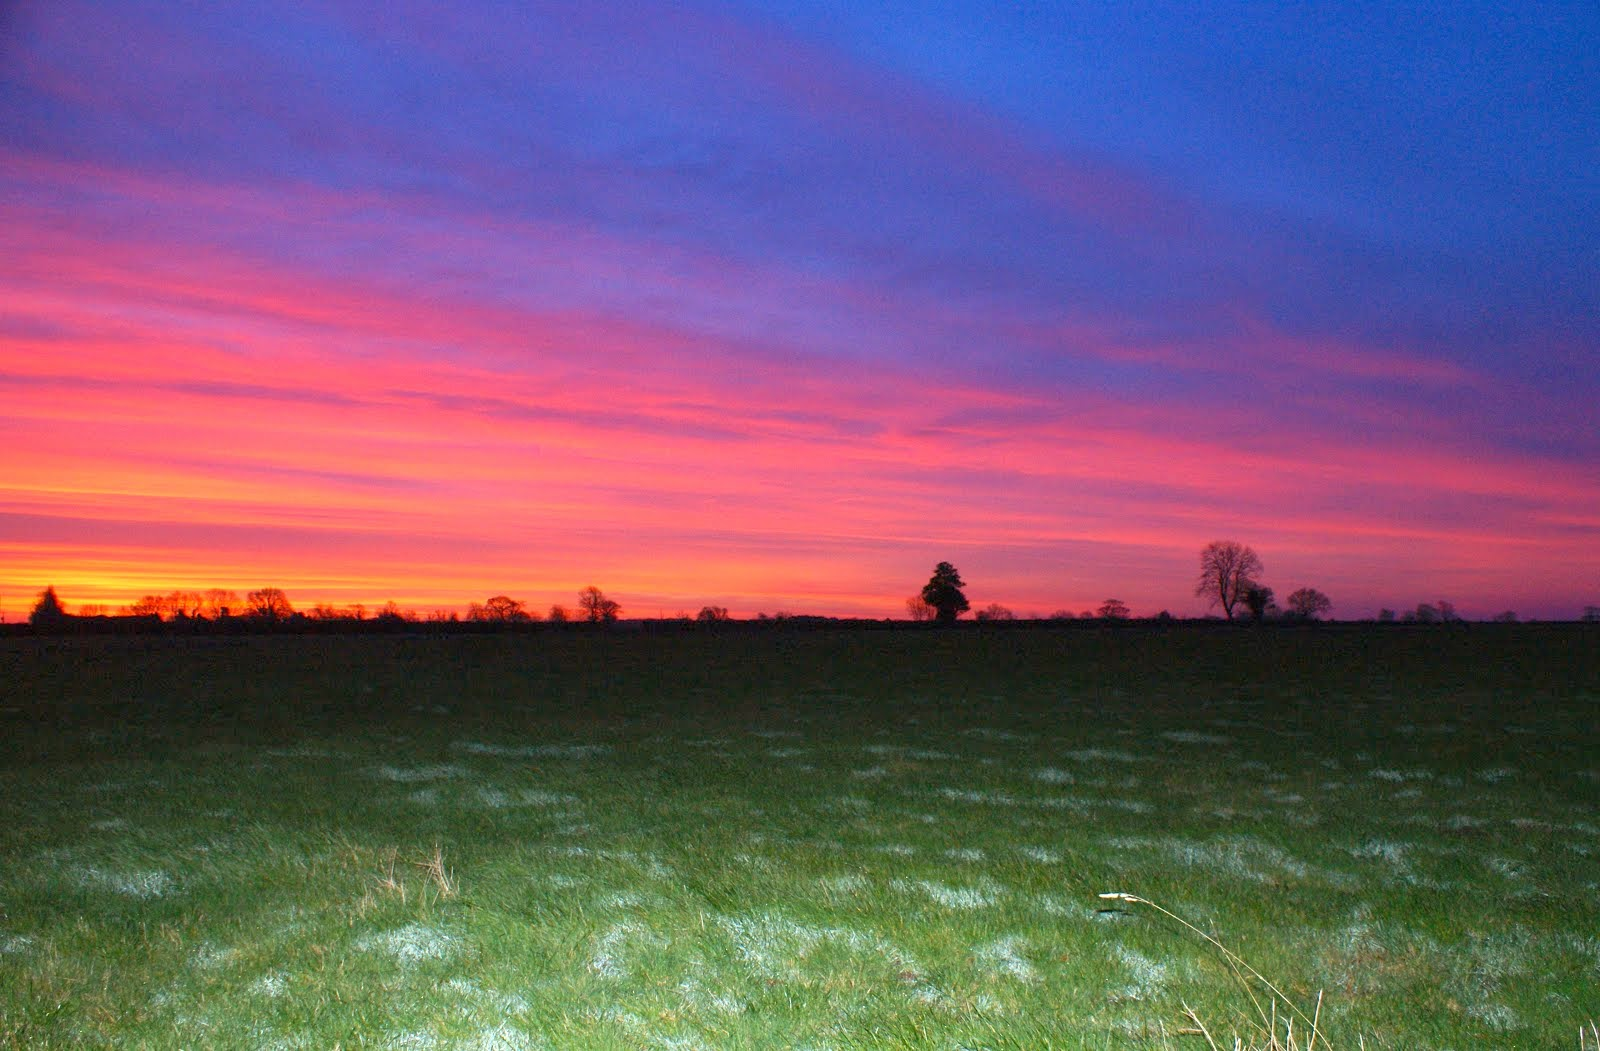 Sunrise at Le Grys Farm